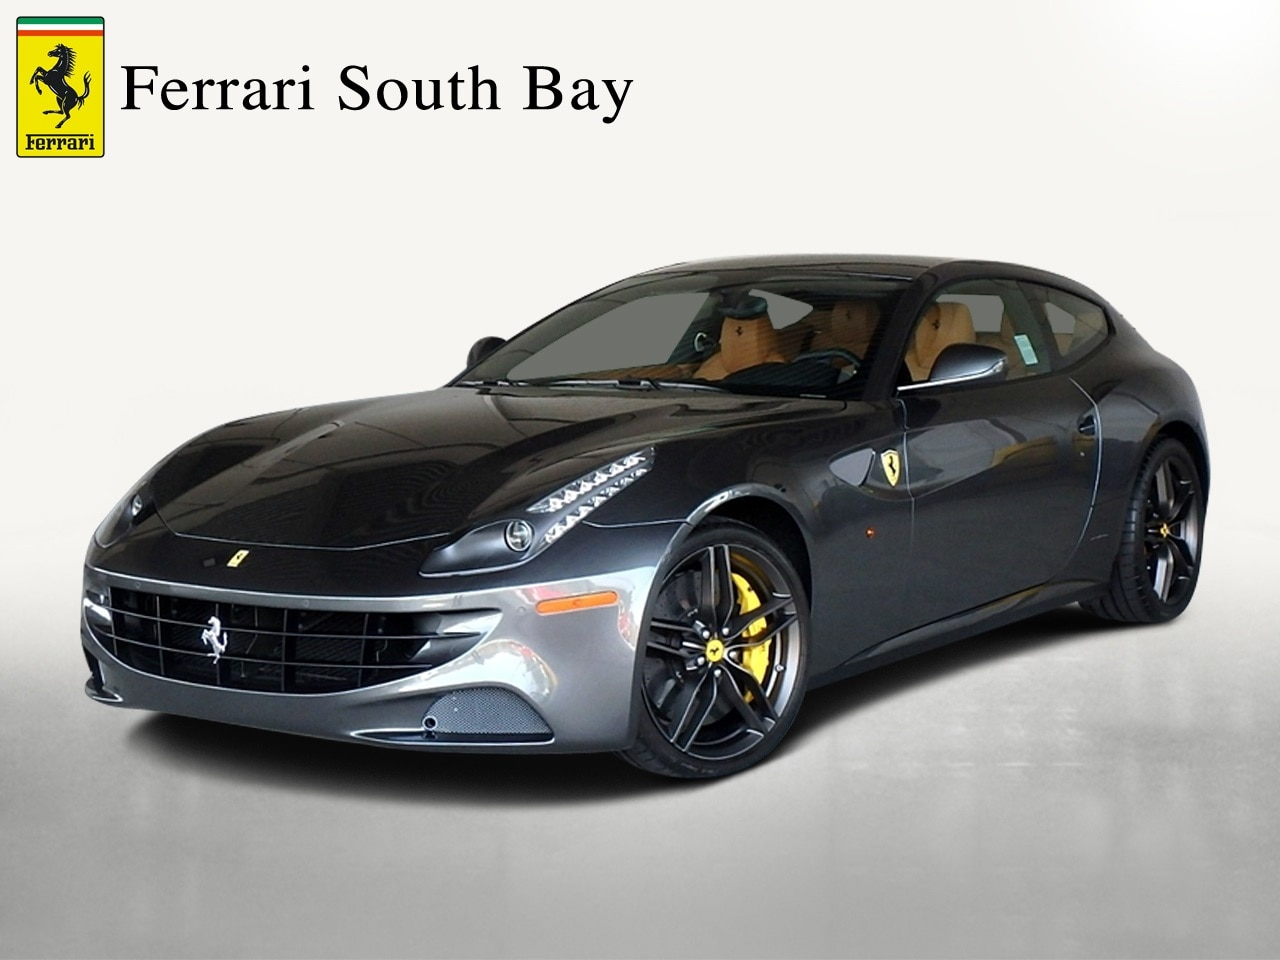 Certified Pre-Owned 2015 Ferrari FF Coupe For Sale Beverly Hills, California